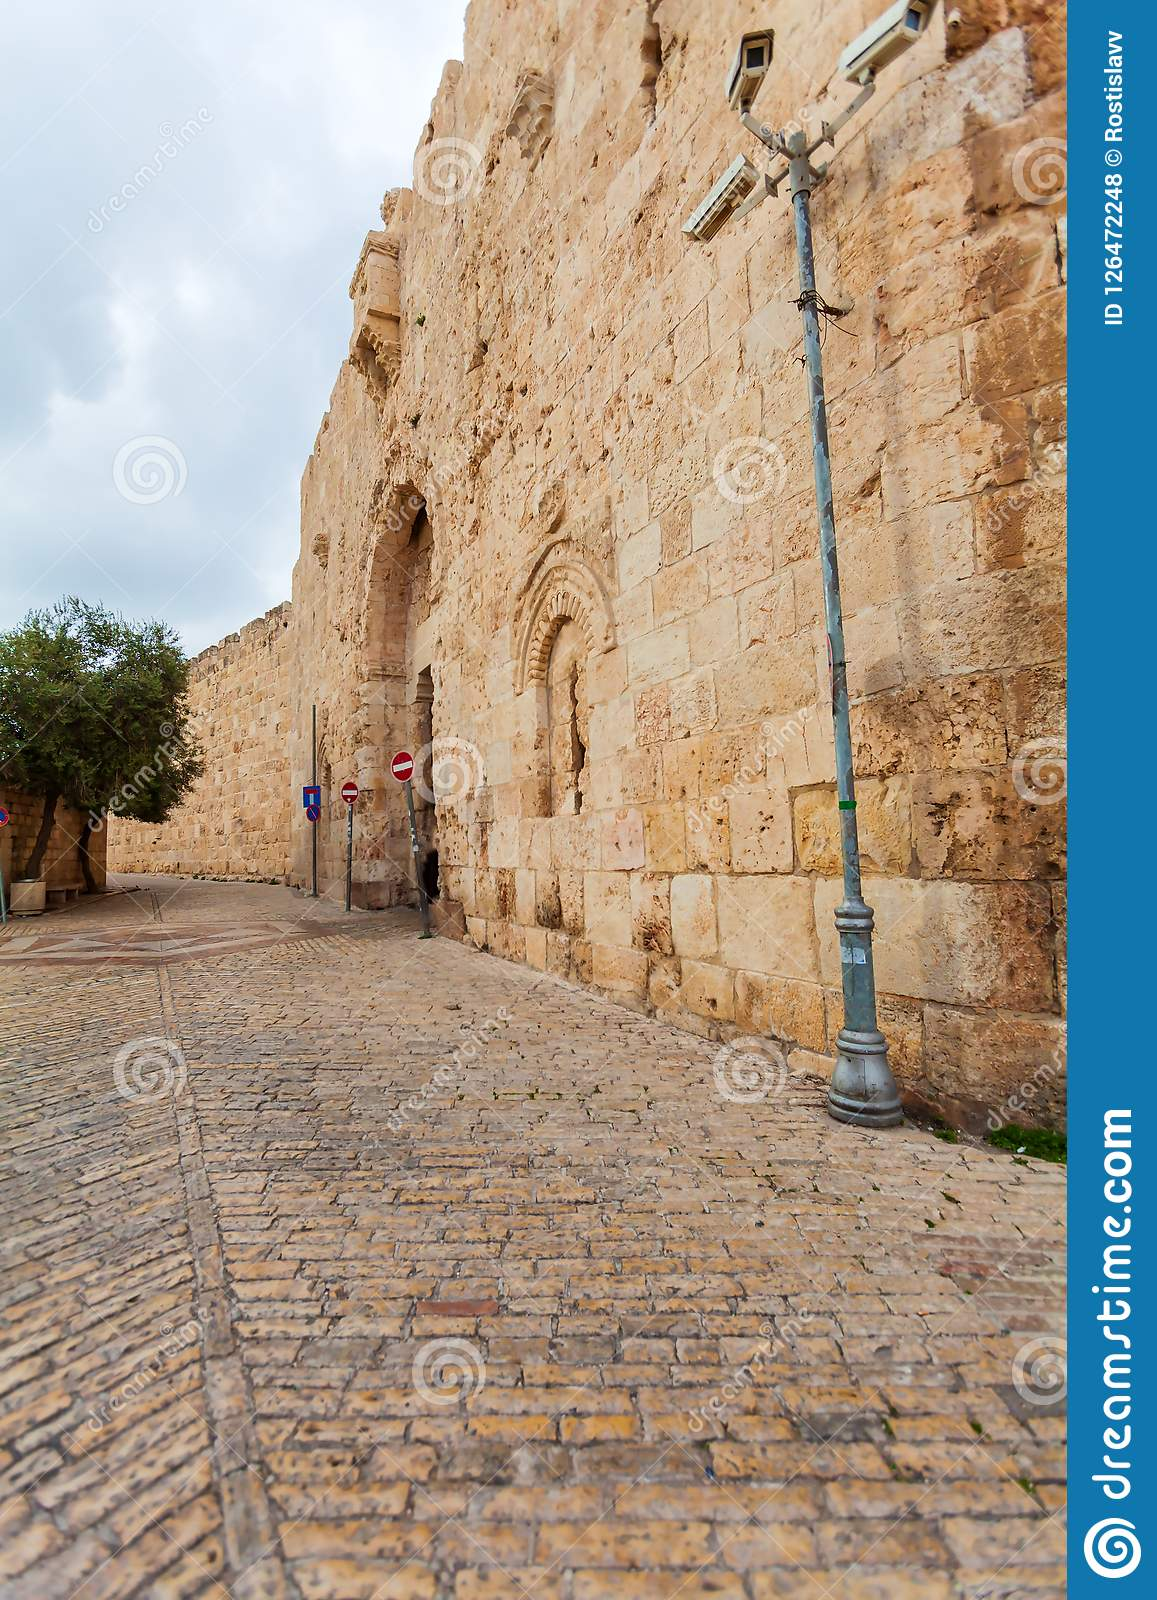 Walls of Ancient City and palm tree, Jerusalem